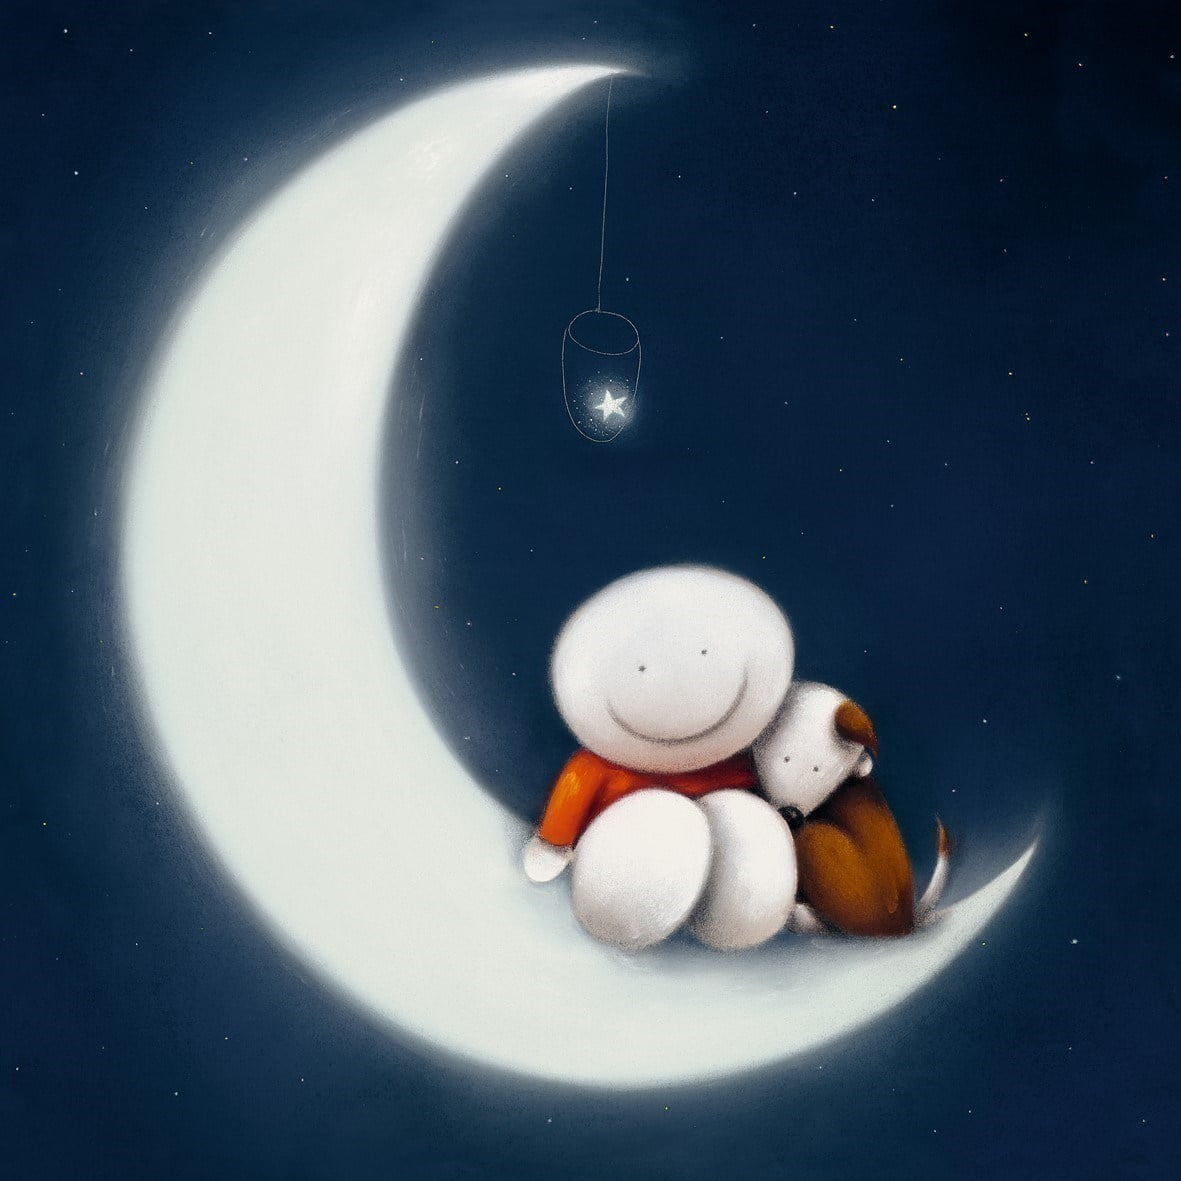 Dreams come true ~ Doug Hyde